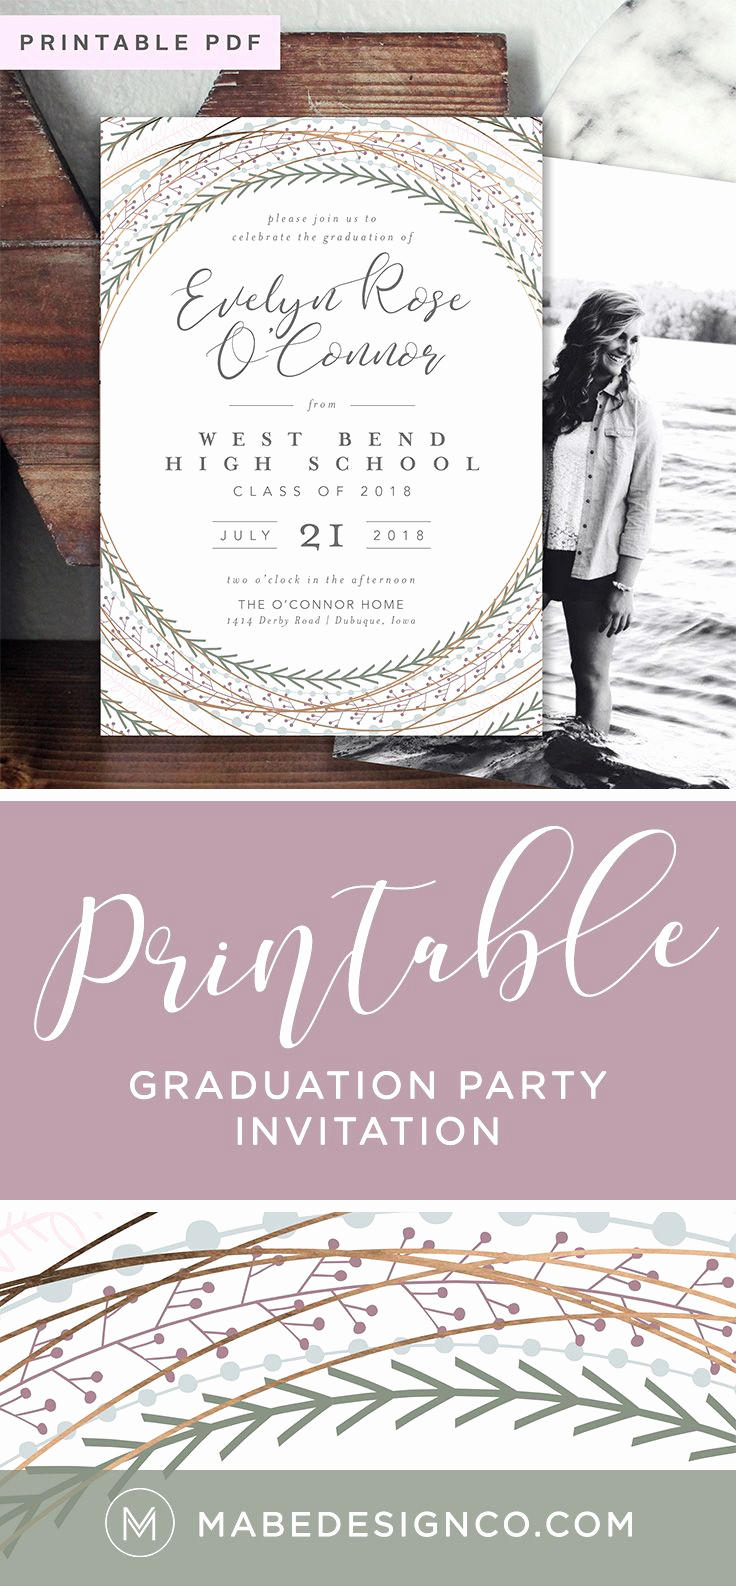 Graduation Open House Invitation Ideas Beautiful Best 25 Graduation Invitation Wording Ideas On Pinterest